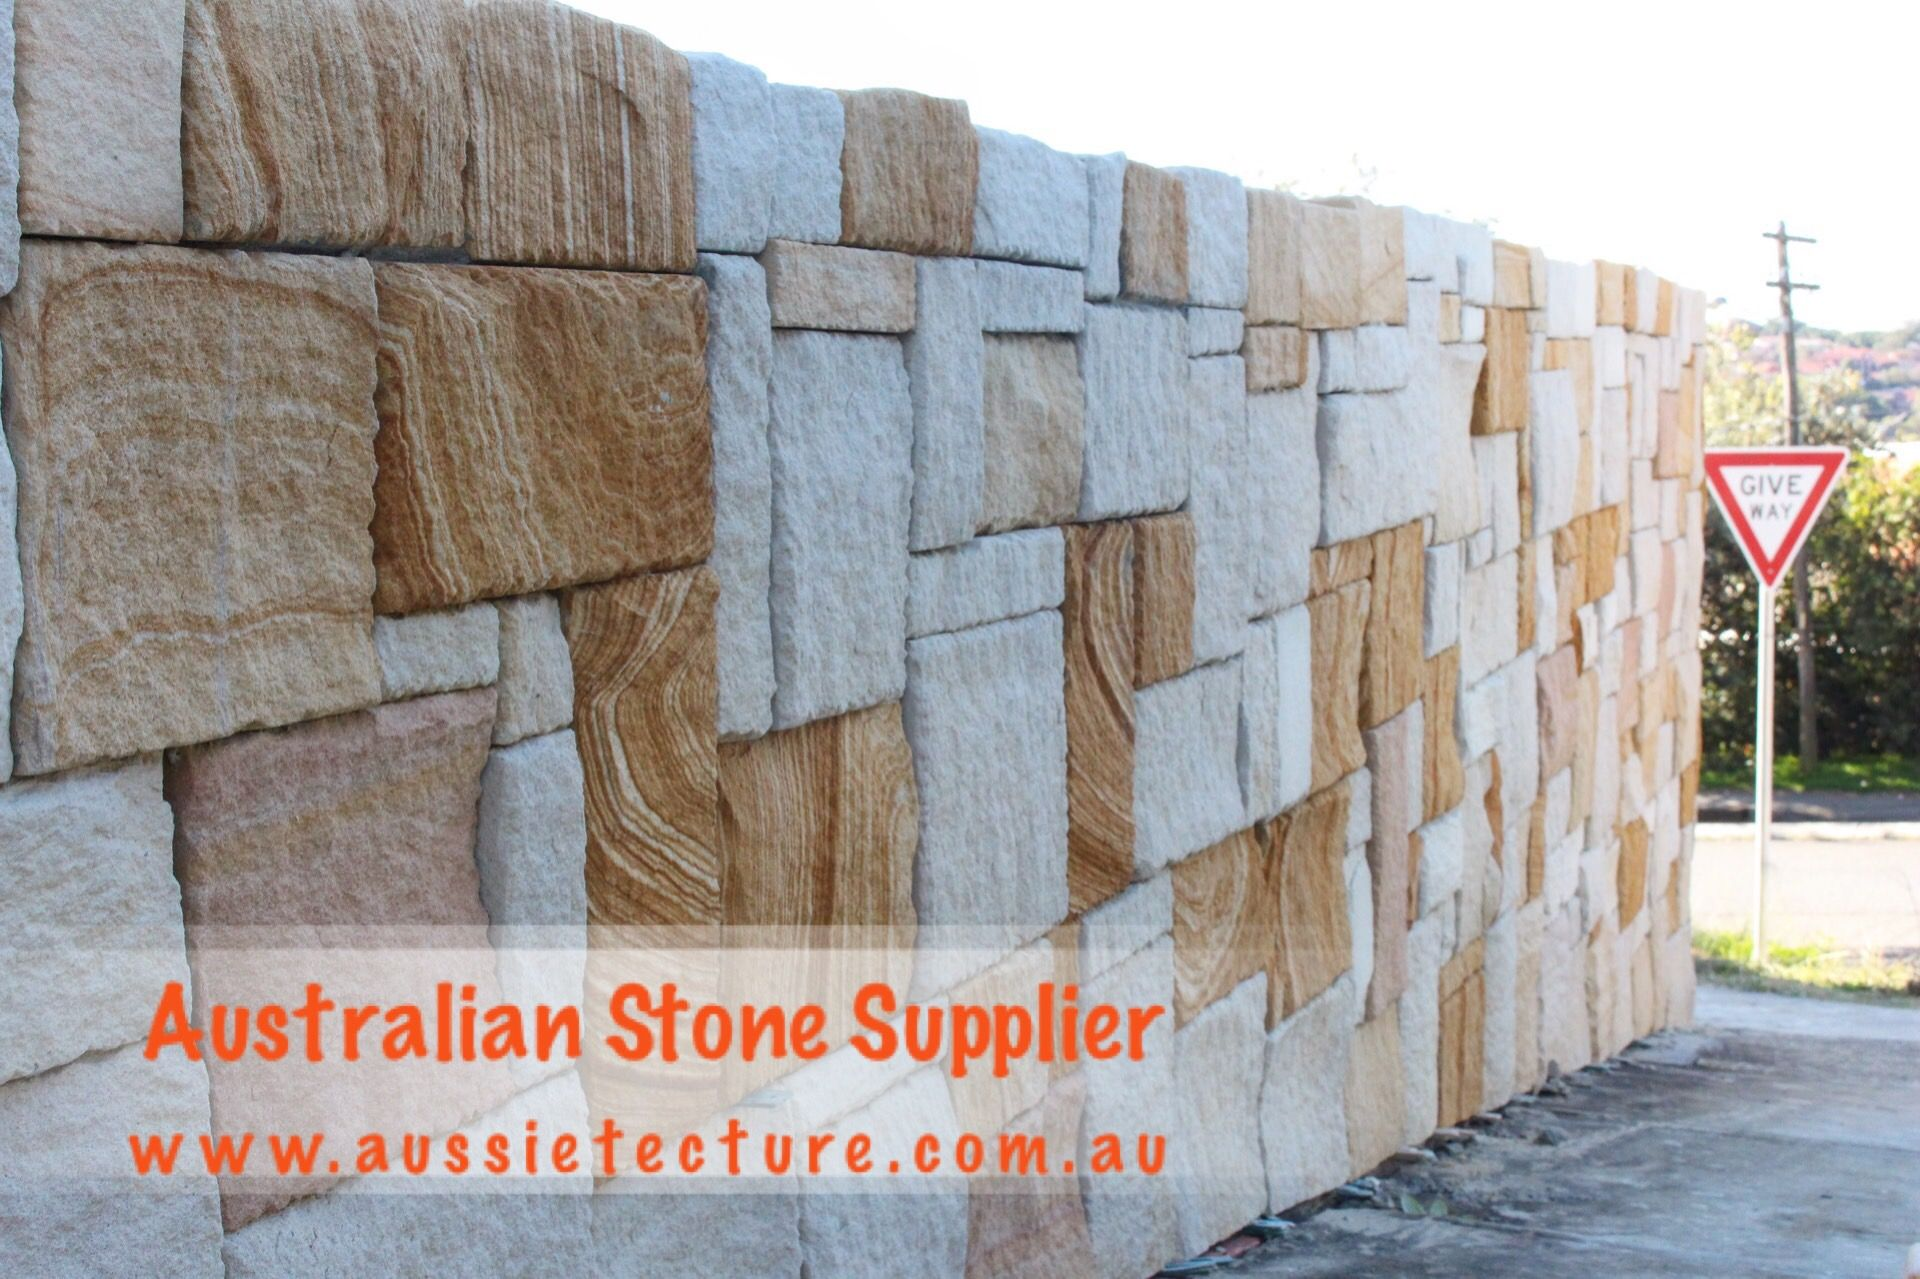 Australian Sandstone Colonial Walling Made Up Of Natural Sandstone Cladding Available In 4 Colors Sandstone Corner Sandstone Capping A Stone Cladding Natural Stone Cladding Sandstone Cladding